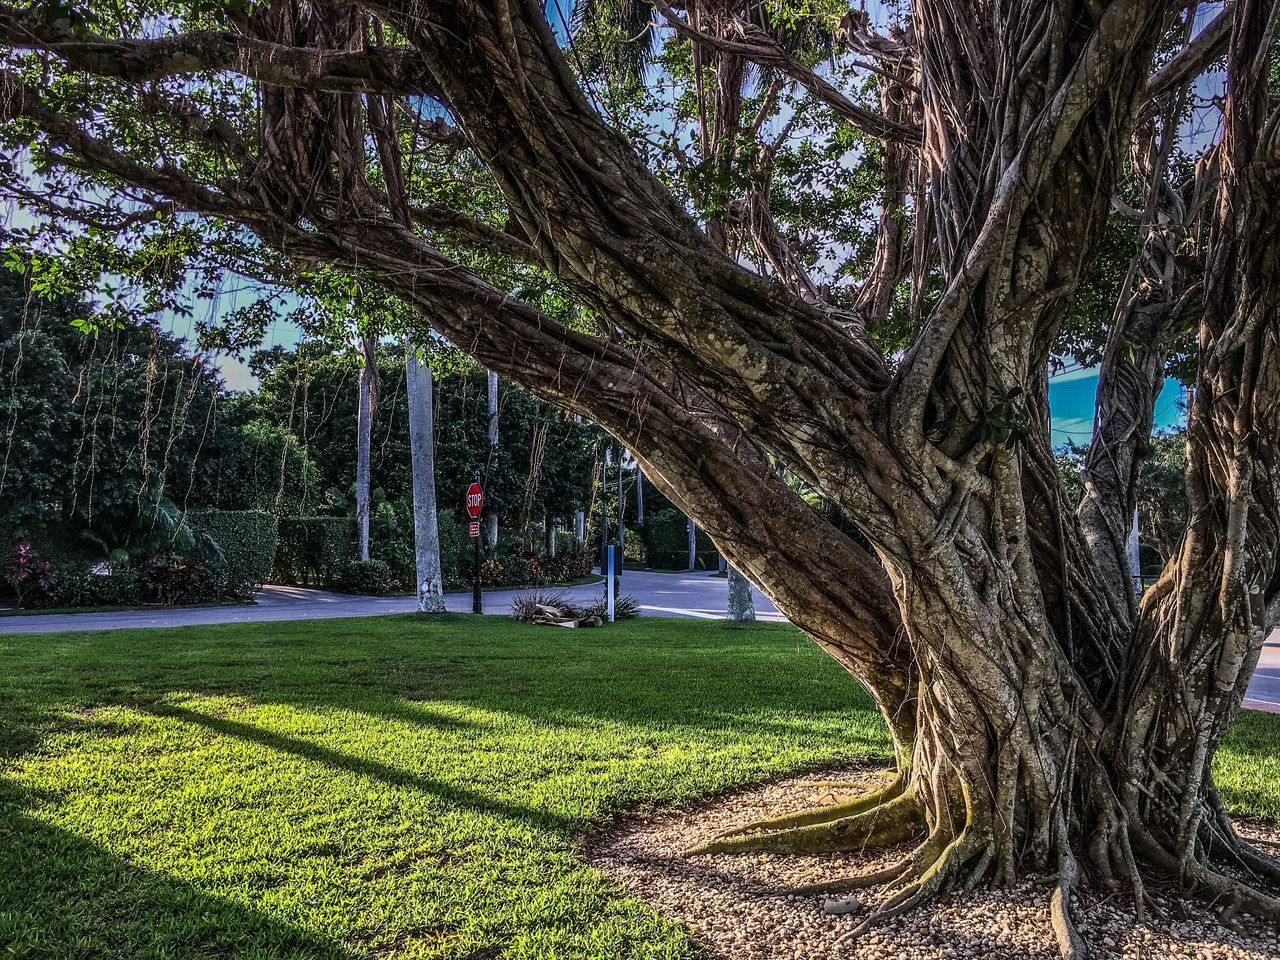 tree, tree trunk, grass, growth, park - man made space, nature, green color, day, outdoors, tranquility, beauty in nature, branch, no people